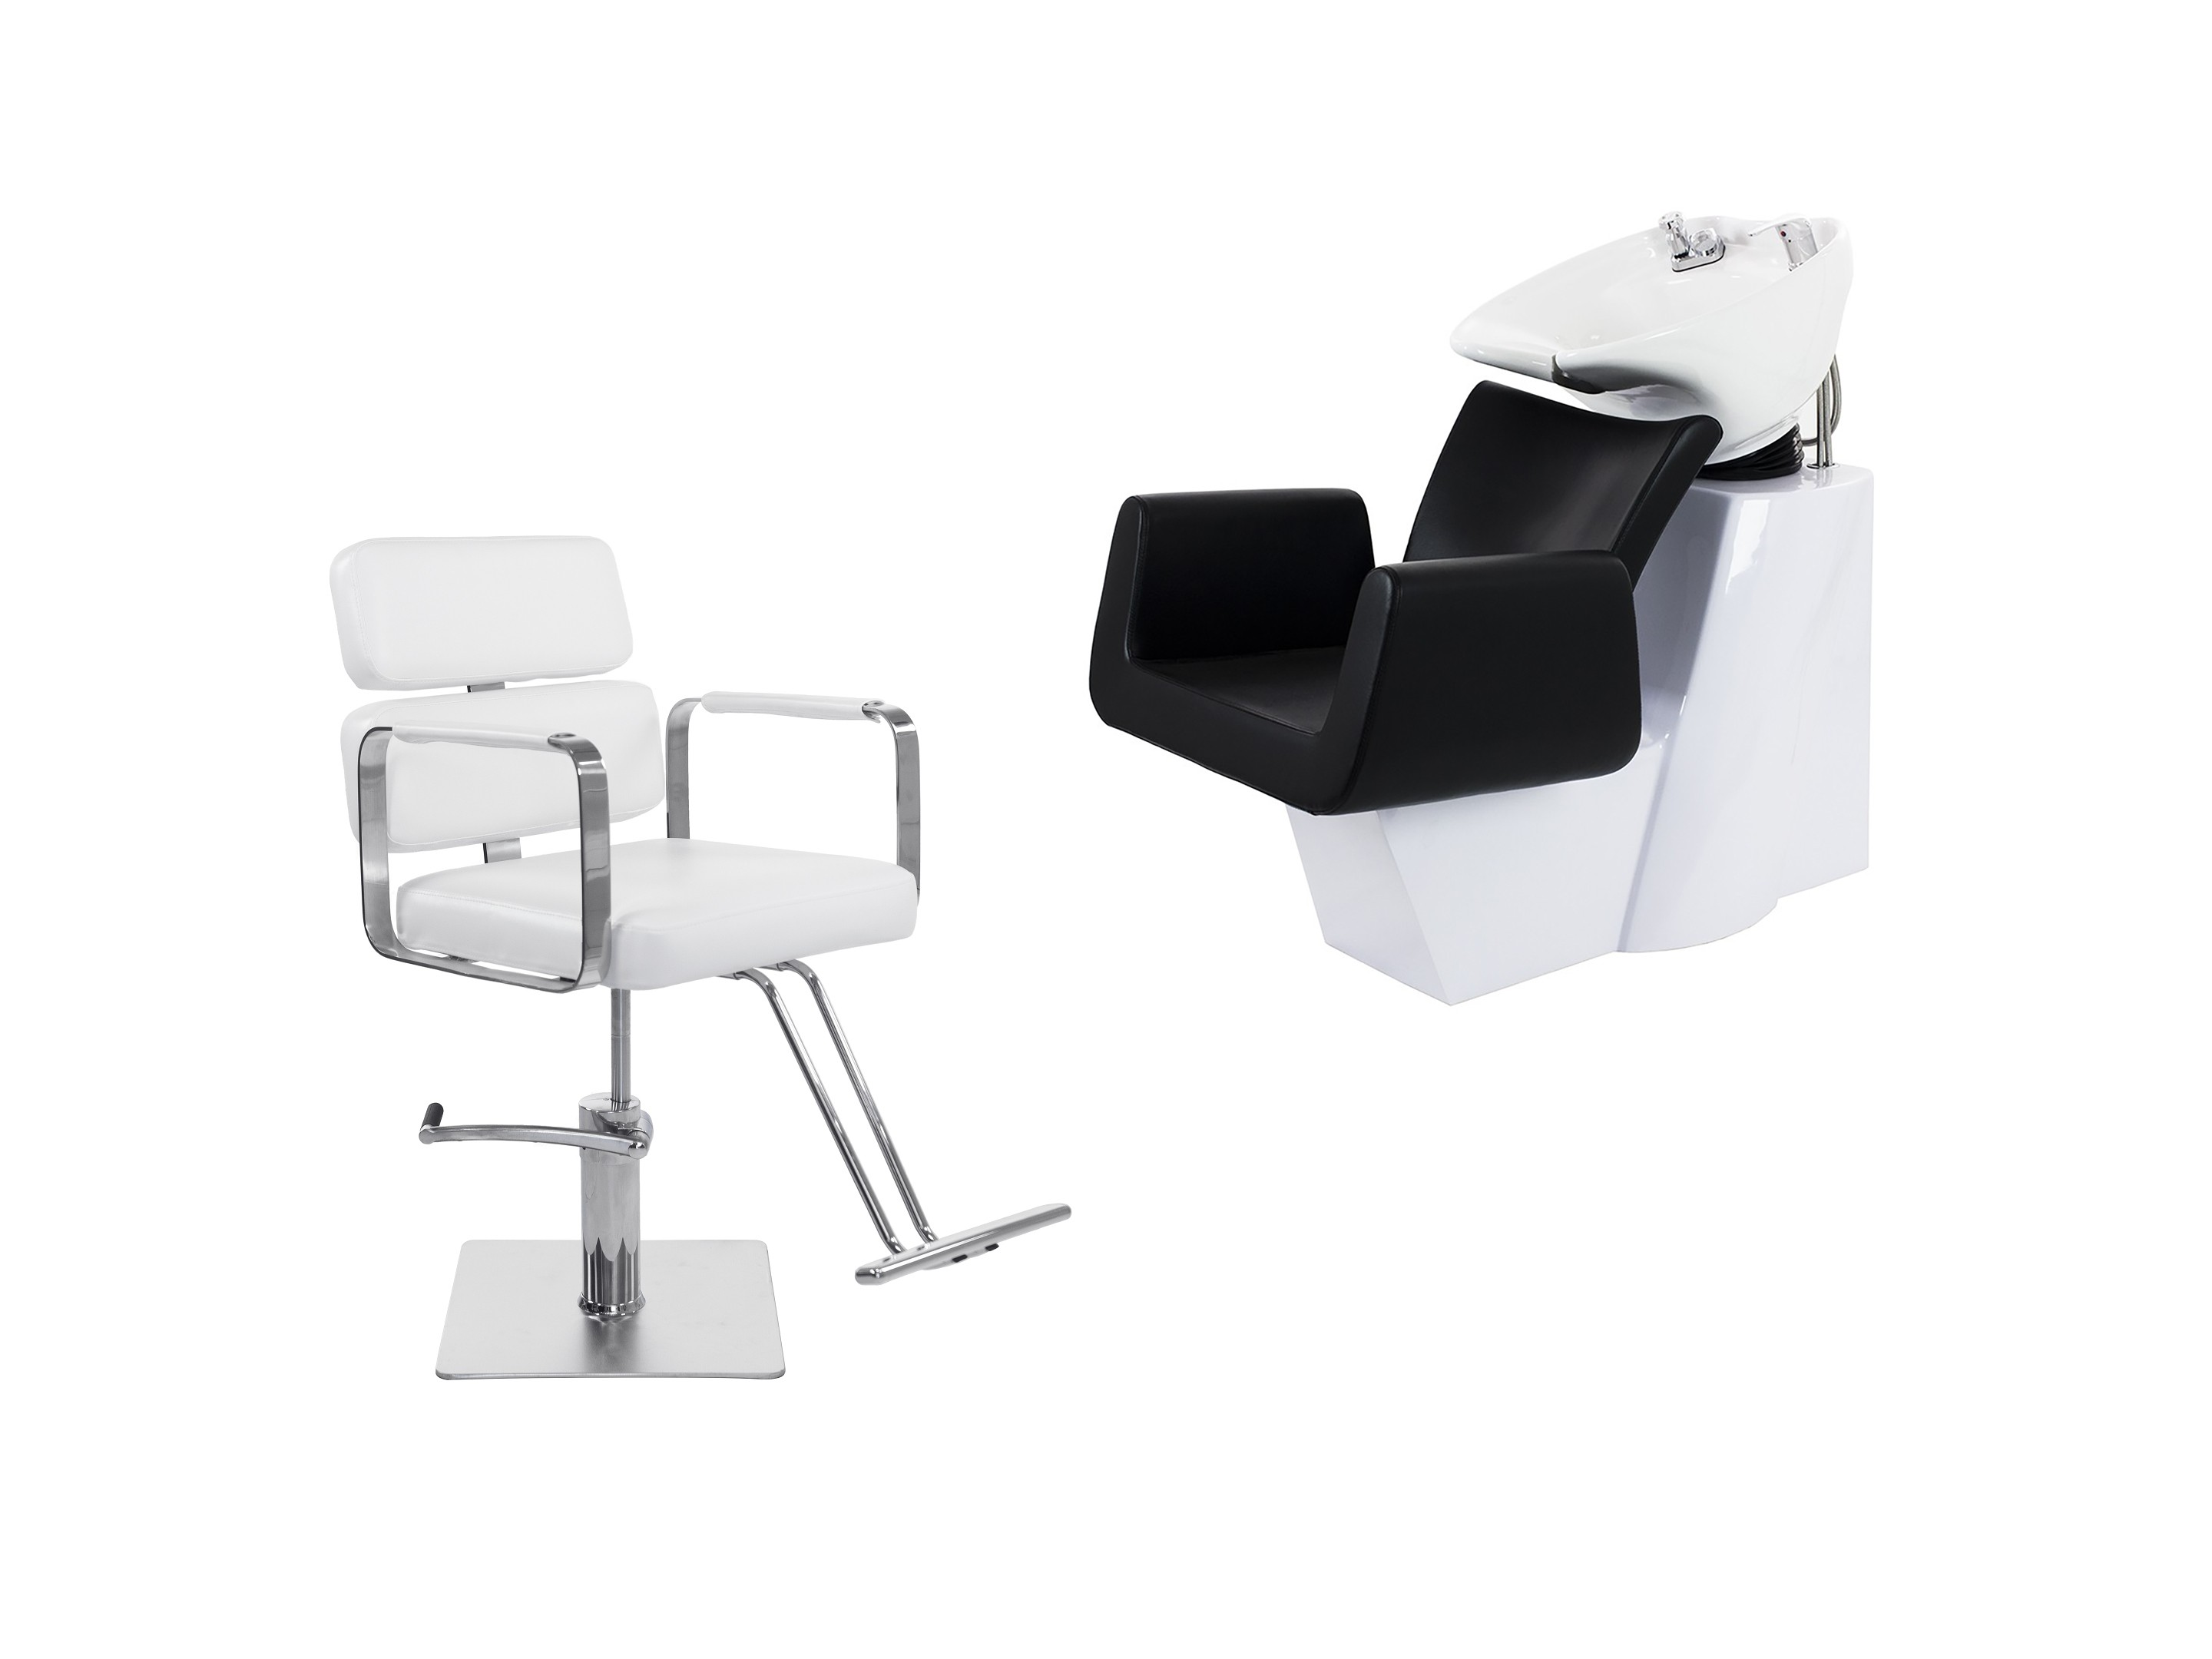 Styling chair, beauty salon equipment, Beauty salon Hair dryer, Barber, equipment, system, machine